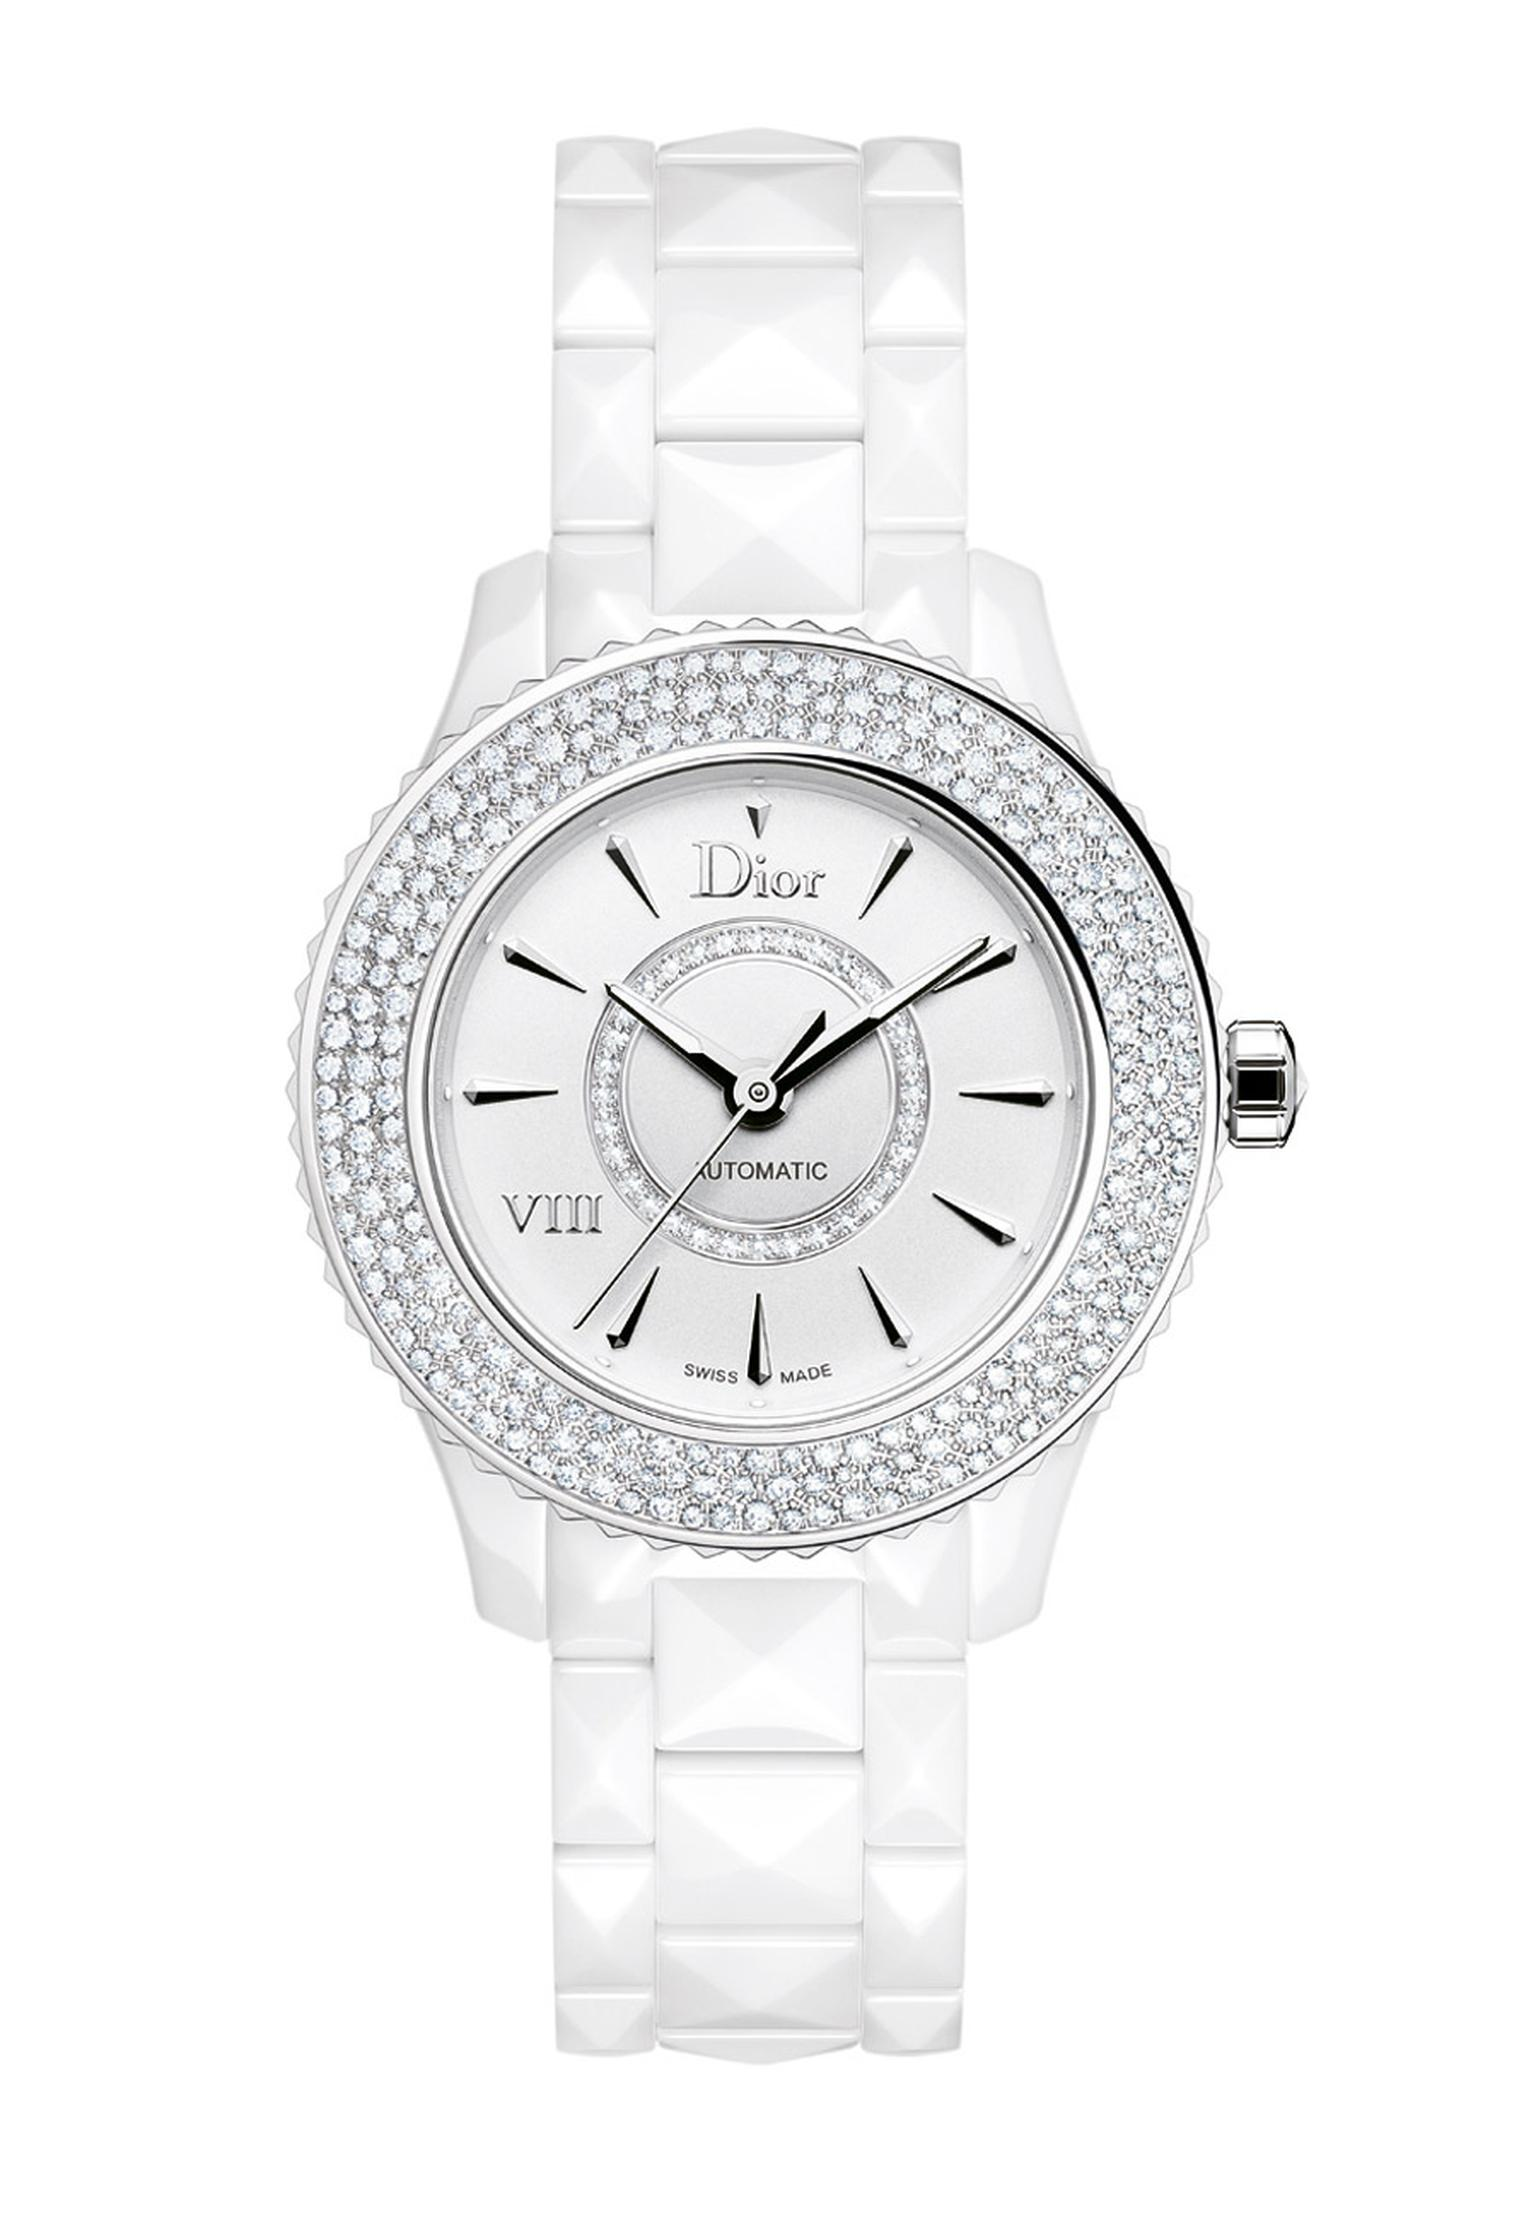 DIOR-VIII-WHITE-AUTO-DIAMOND-SNOW-SET-BEZEL-38mm